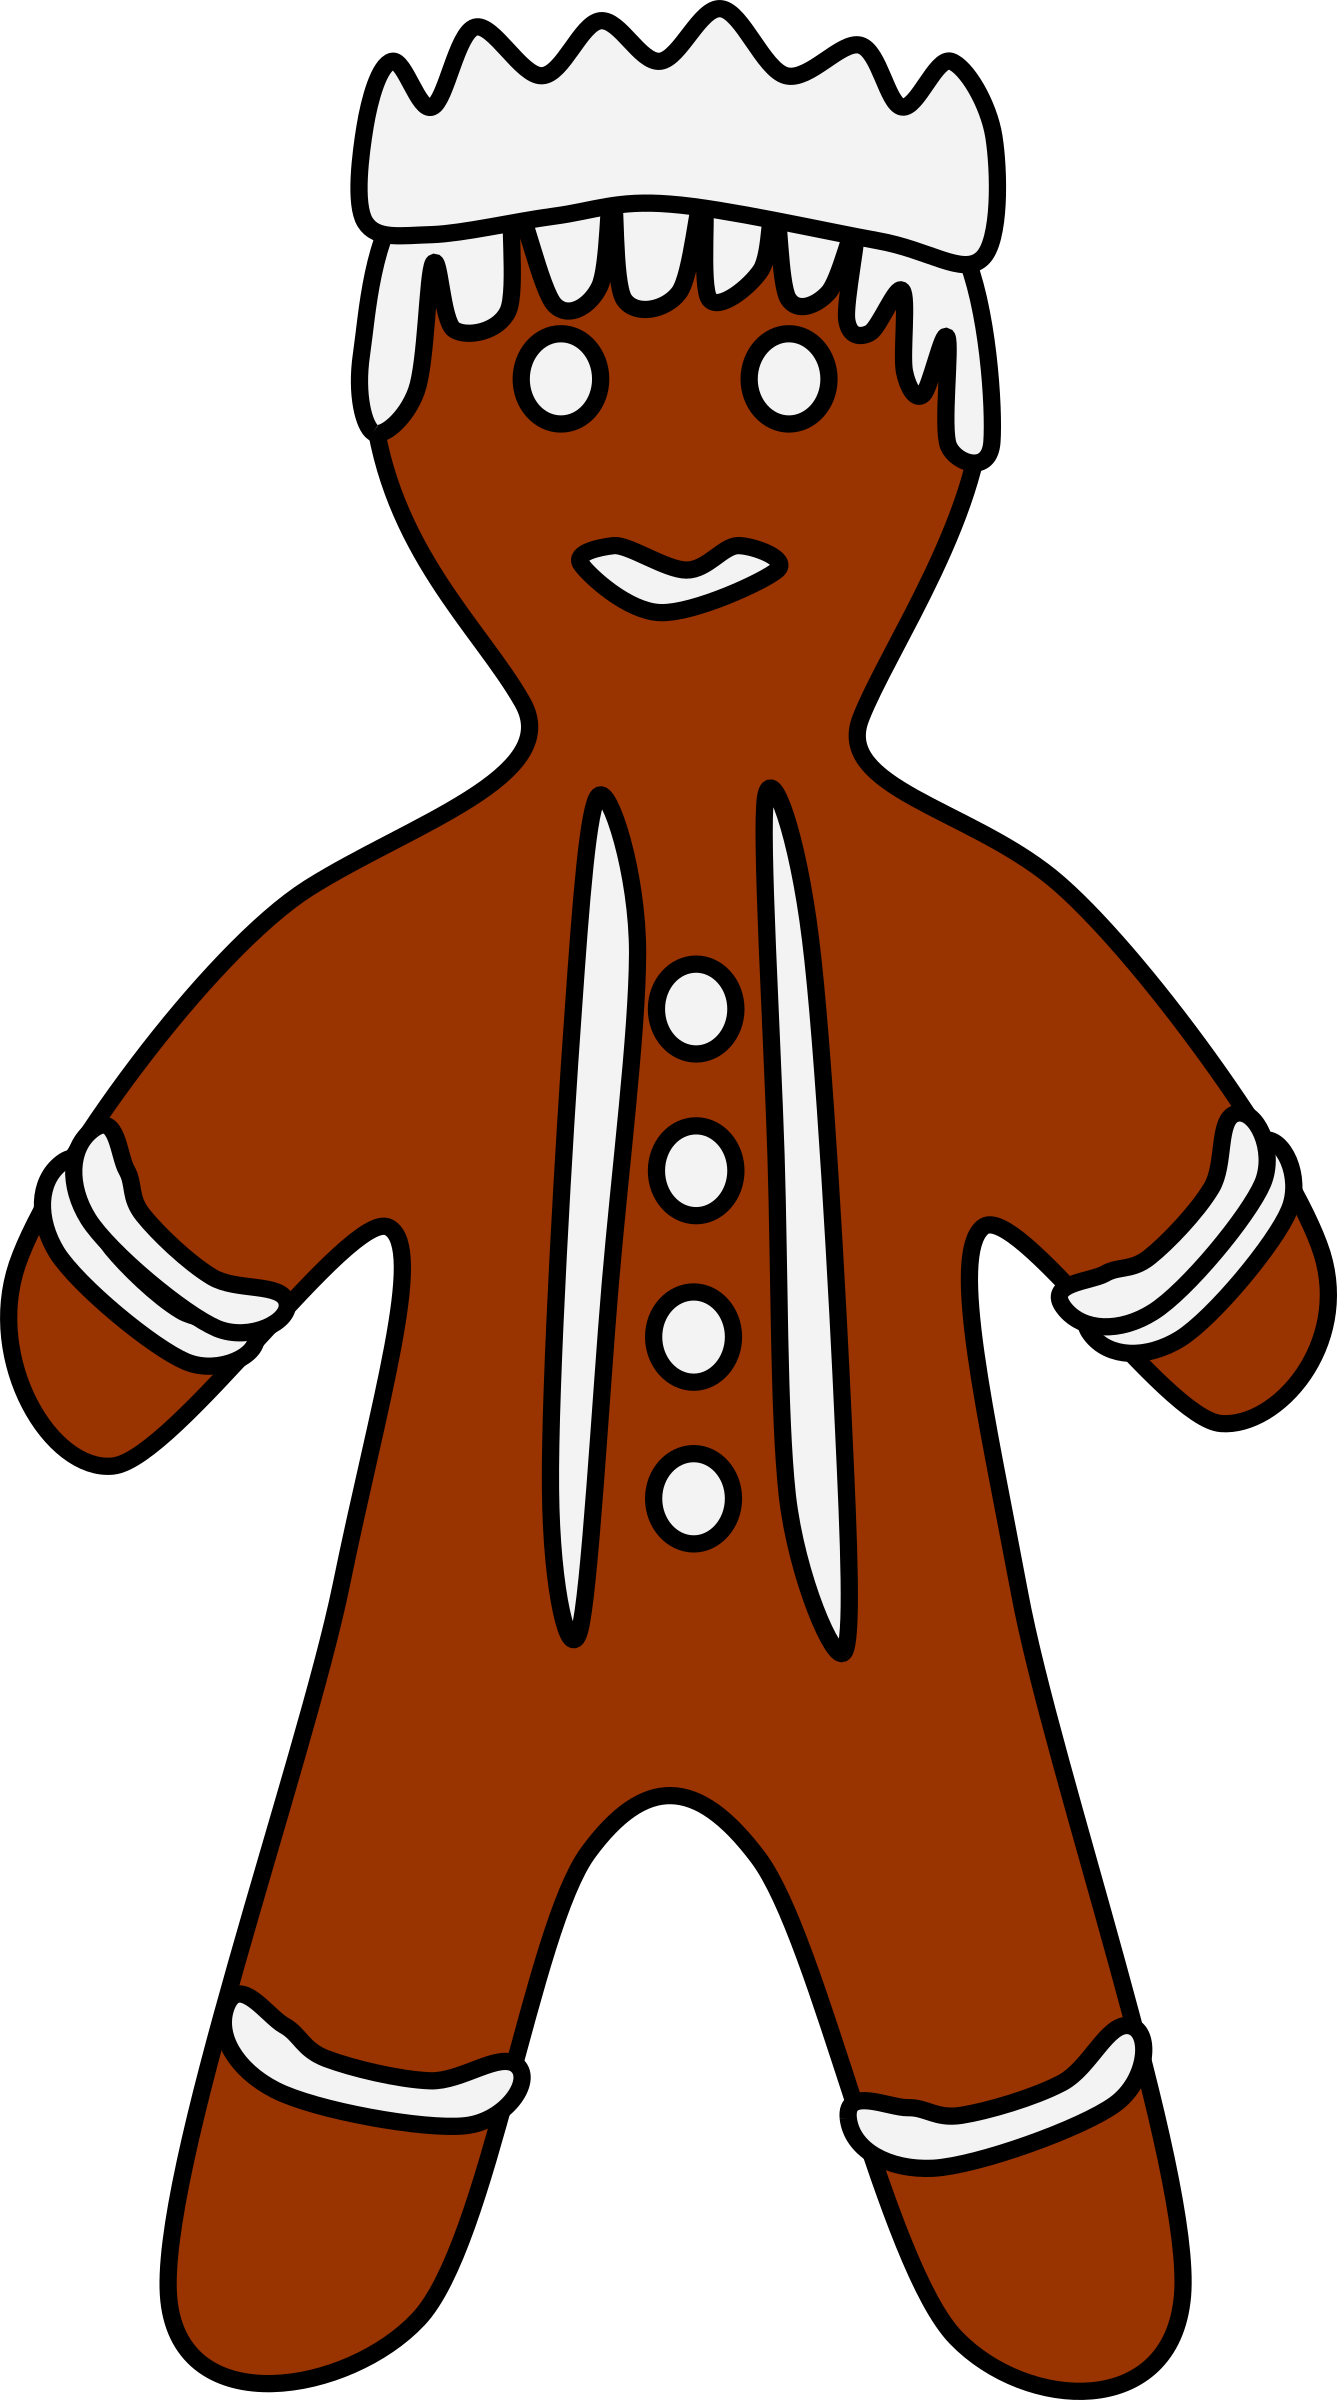 Gingerbread wiseman big image. King clipart wise man